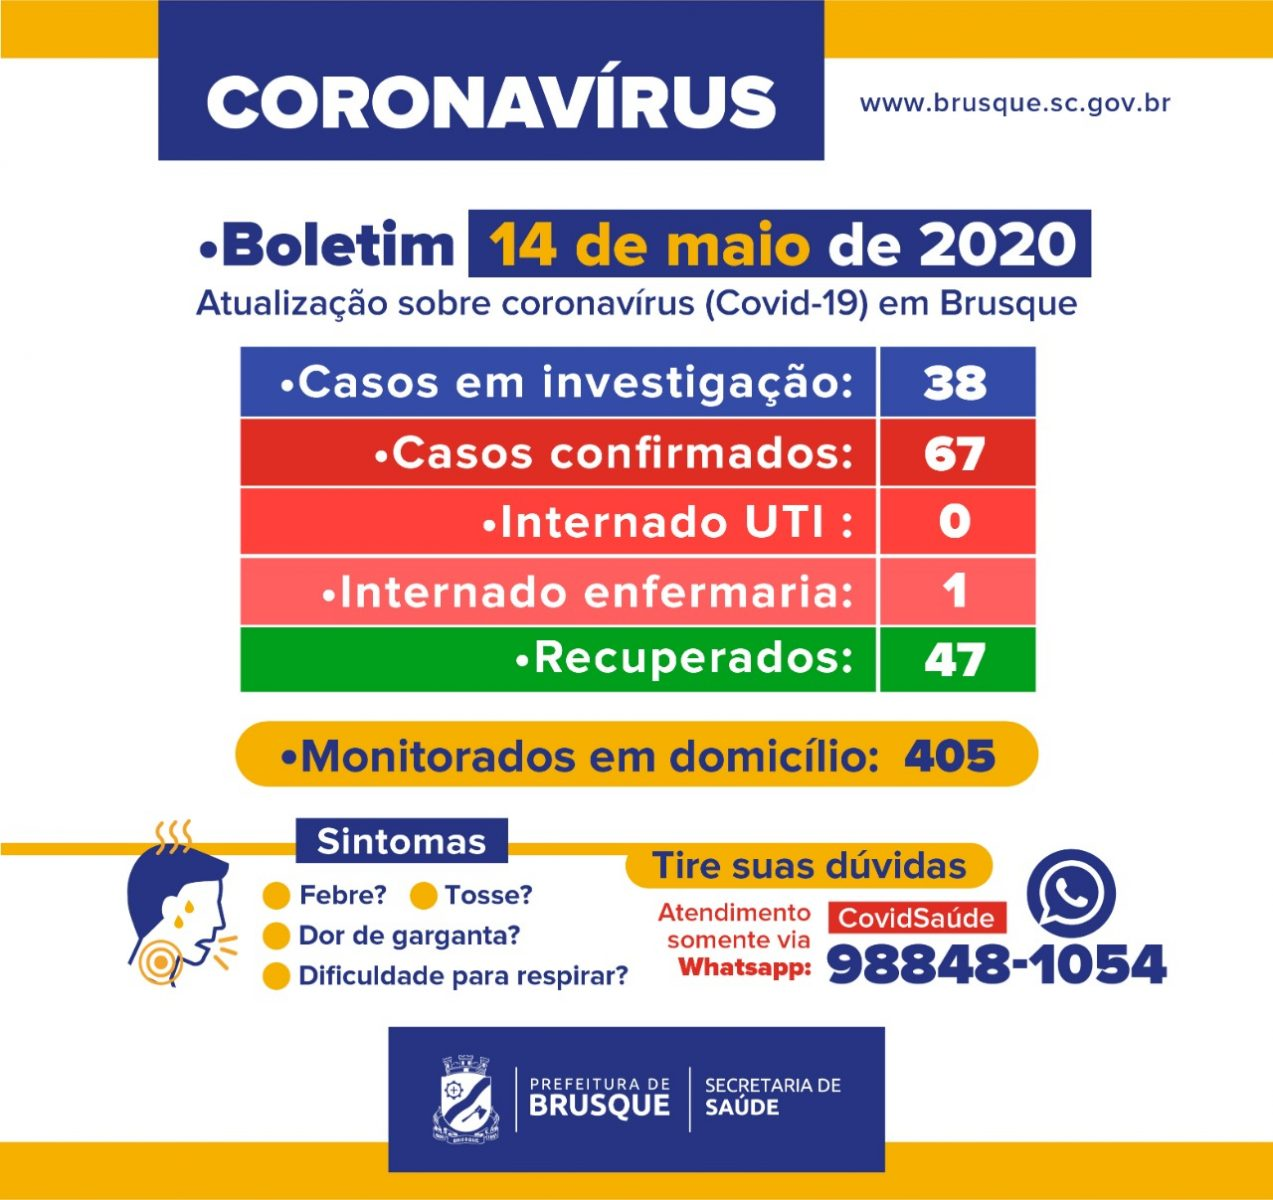 Brusque continua com 67 casos do novo coronavírus